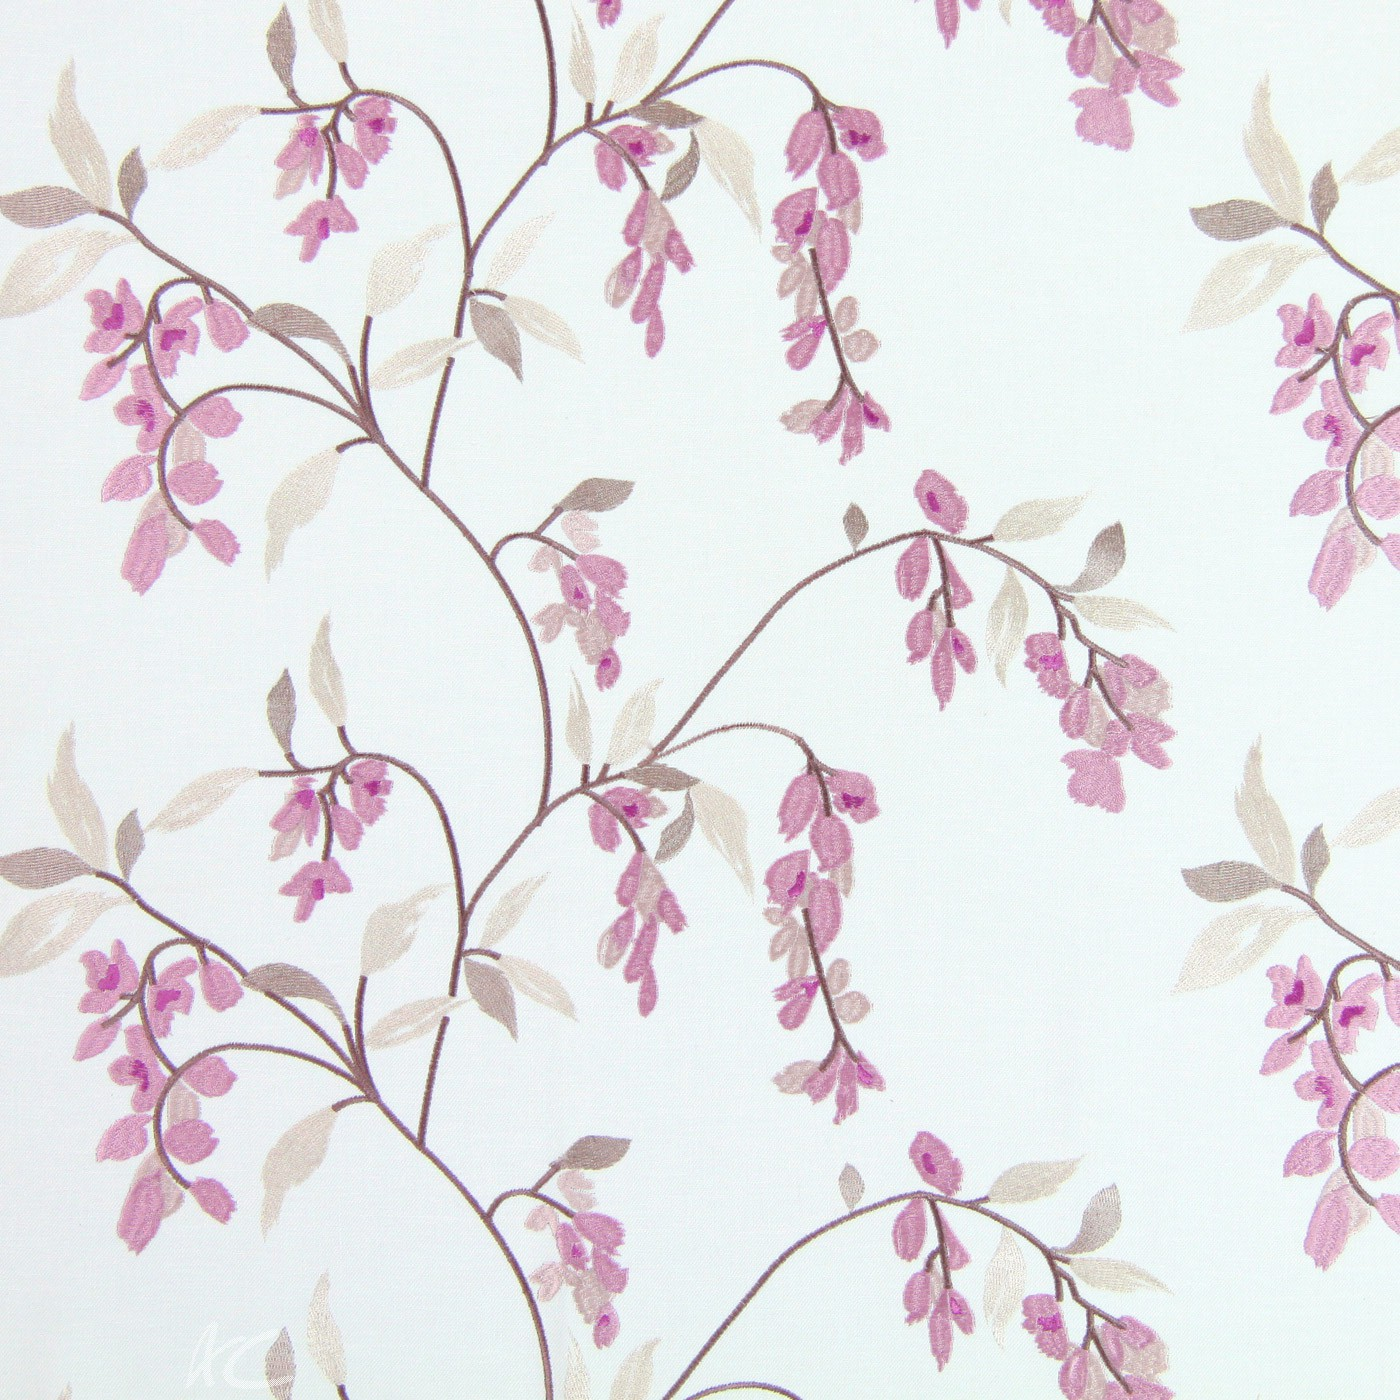 Pemberley Montague Blush Made to Measure Curtains